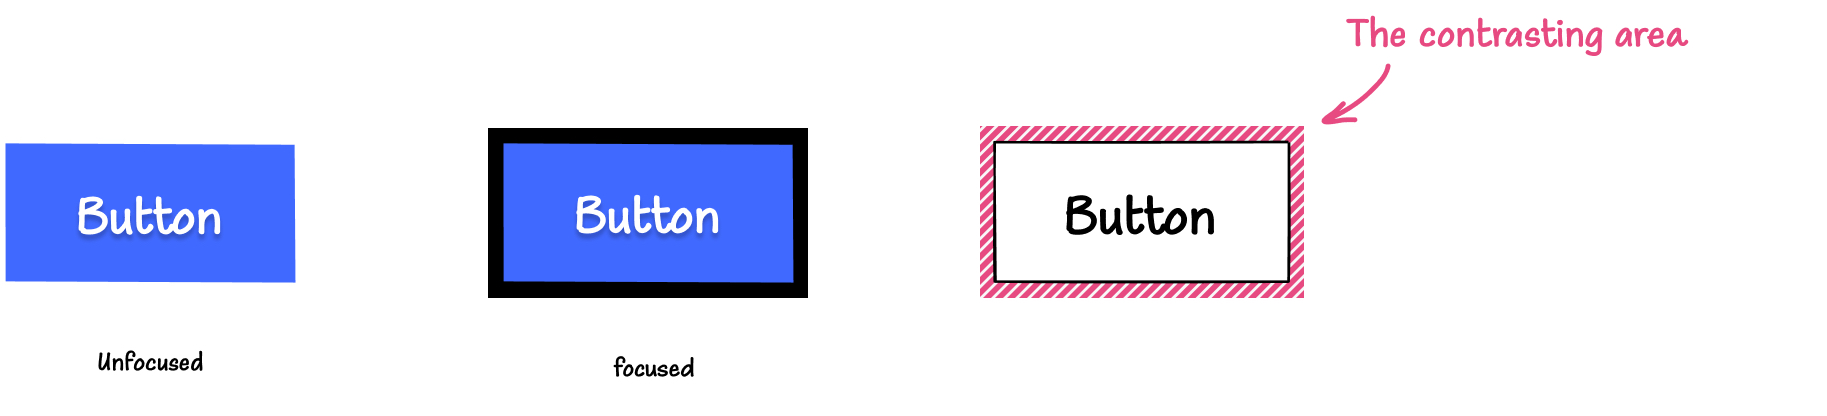 Illustration: On the left is a blue button with a white label in its default, unfocused state. In the middle is the blue button with a thick black outline around it. On the right, is a button with the same outline but with a pattern applied to it, indicating that this patterned area is the contrasting area.